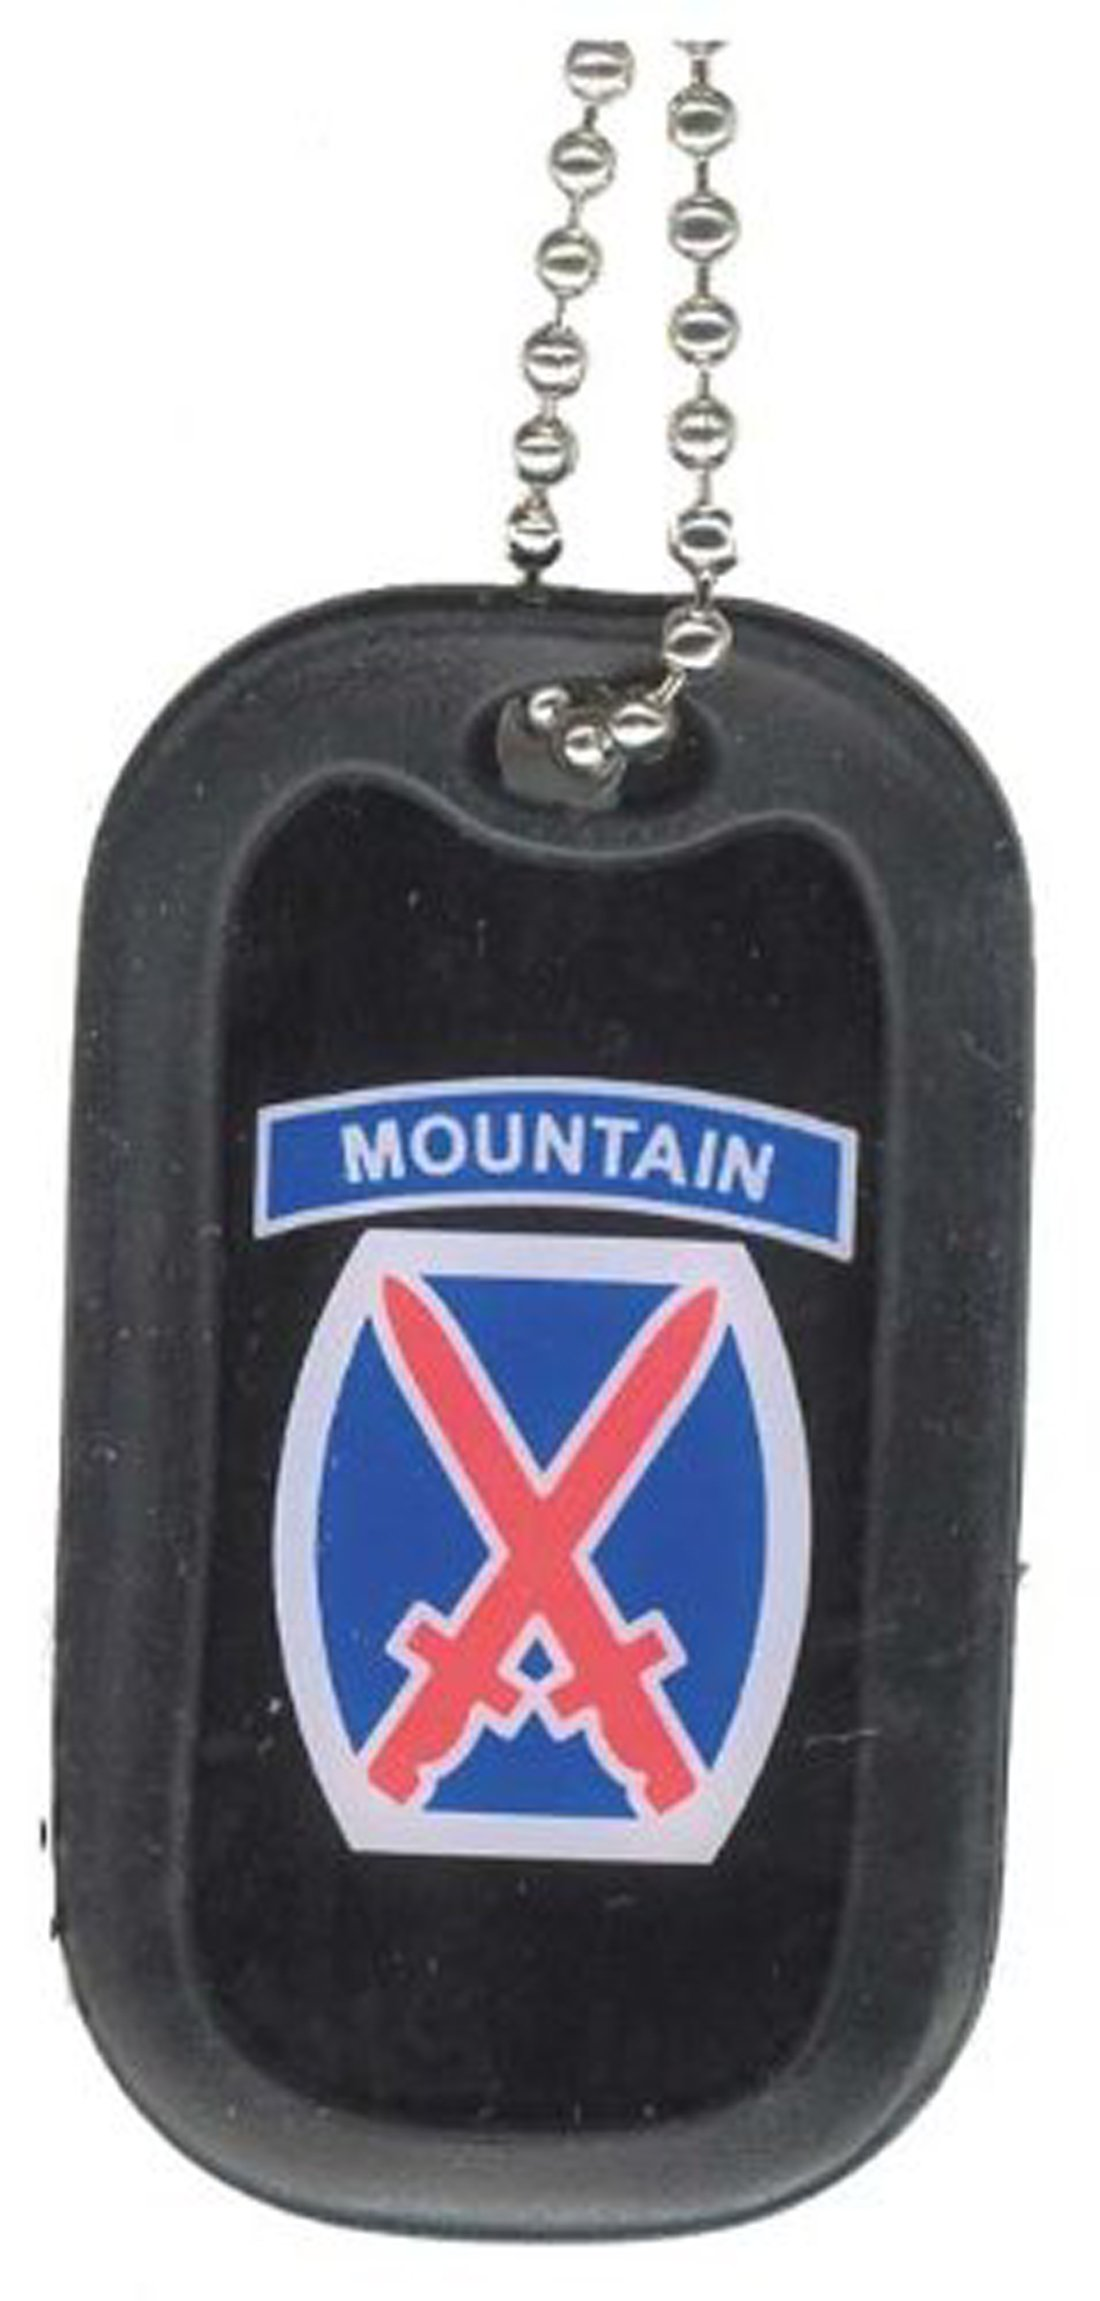 Cheap us military symbols find us military symbols deals on line get quotations united states army 10th mountain unit division rank logo symbols military dog tag luggage tag buycottarizona